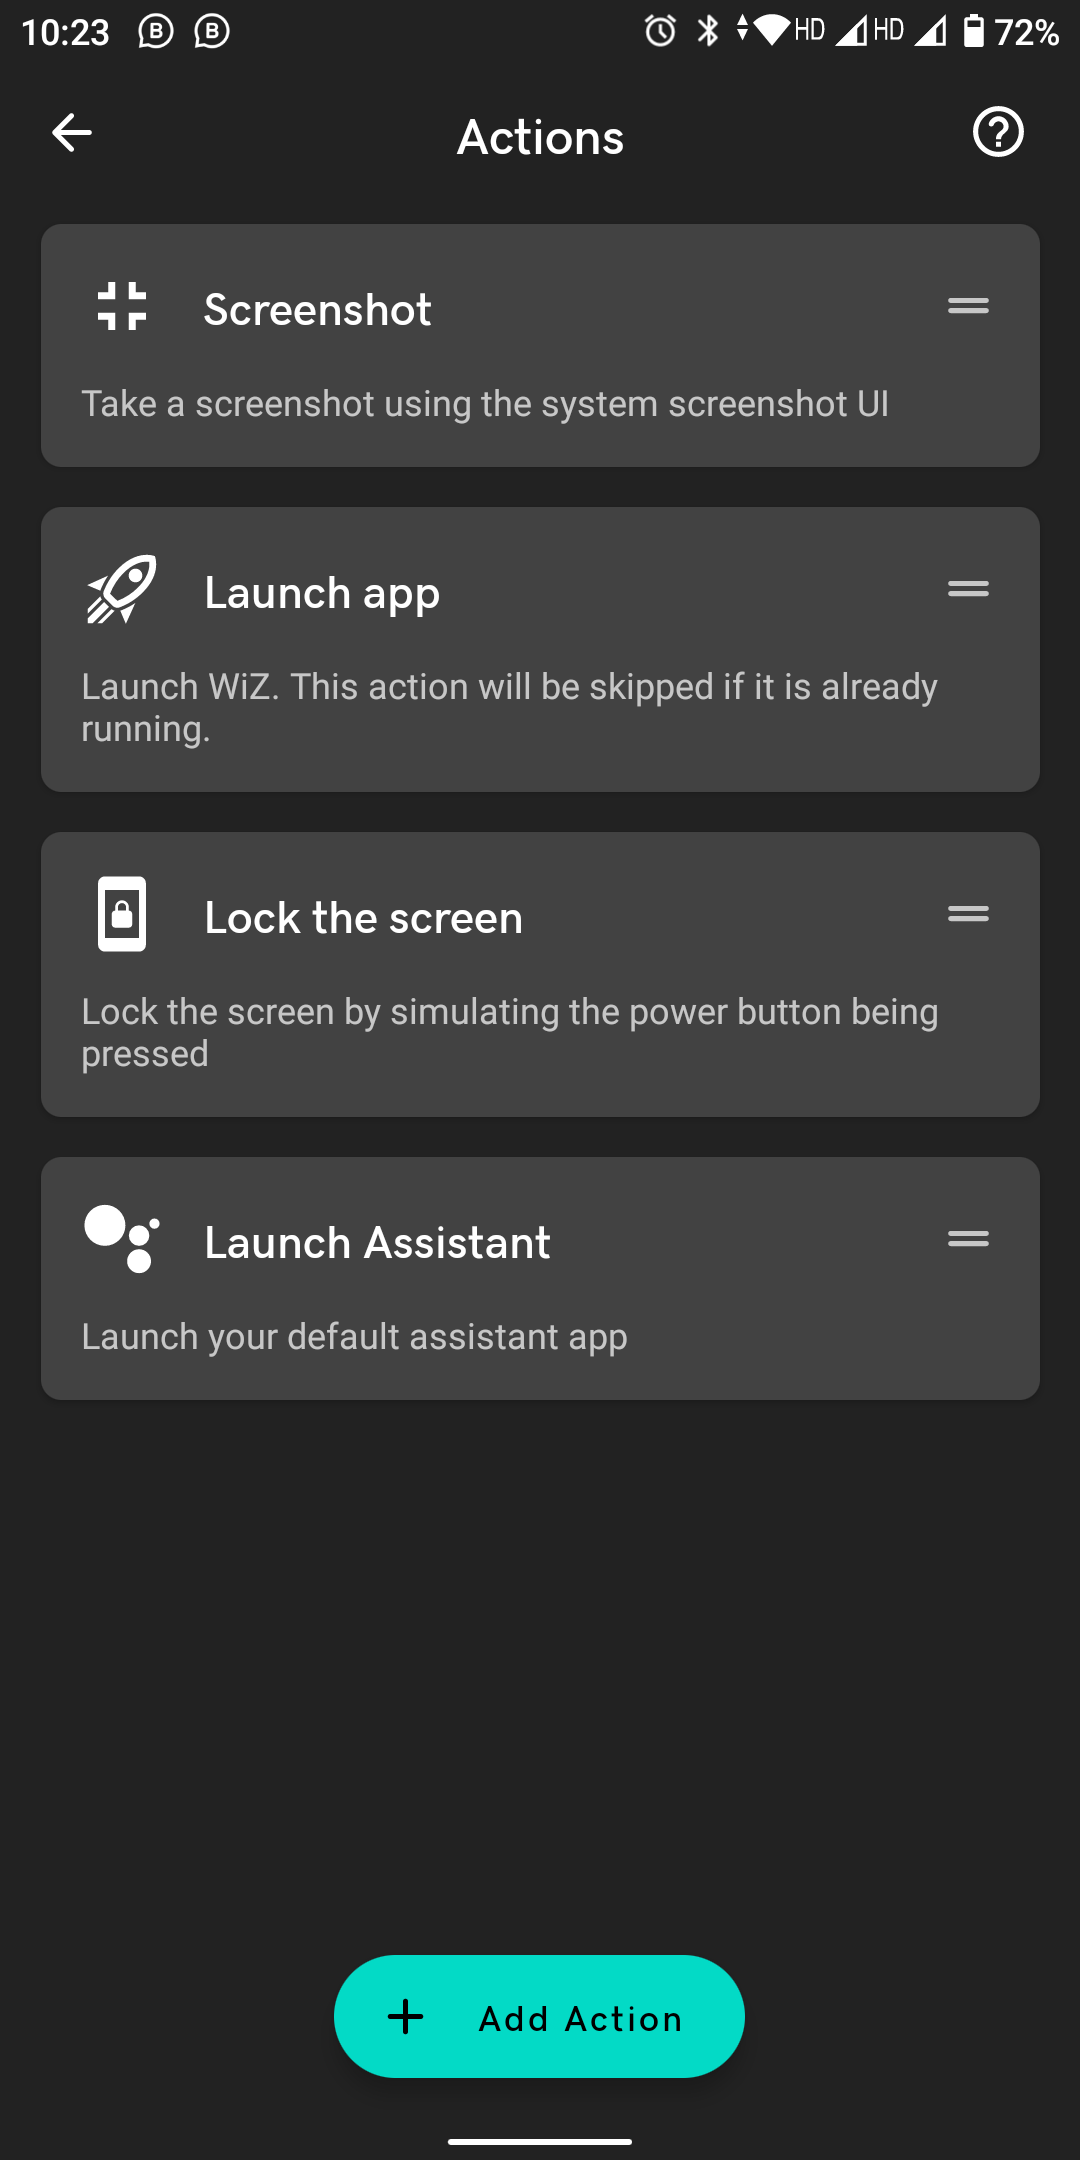 tap-tap-alpha-0.2-actions